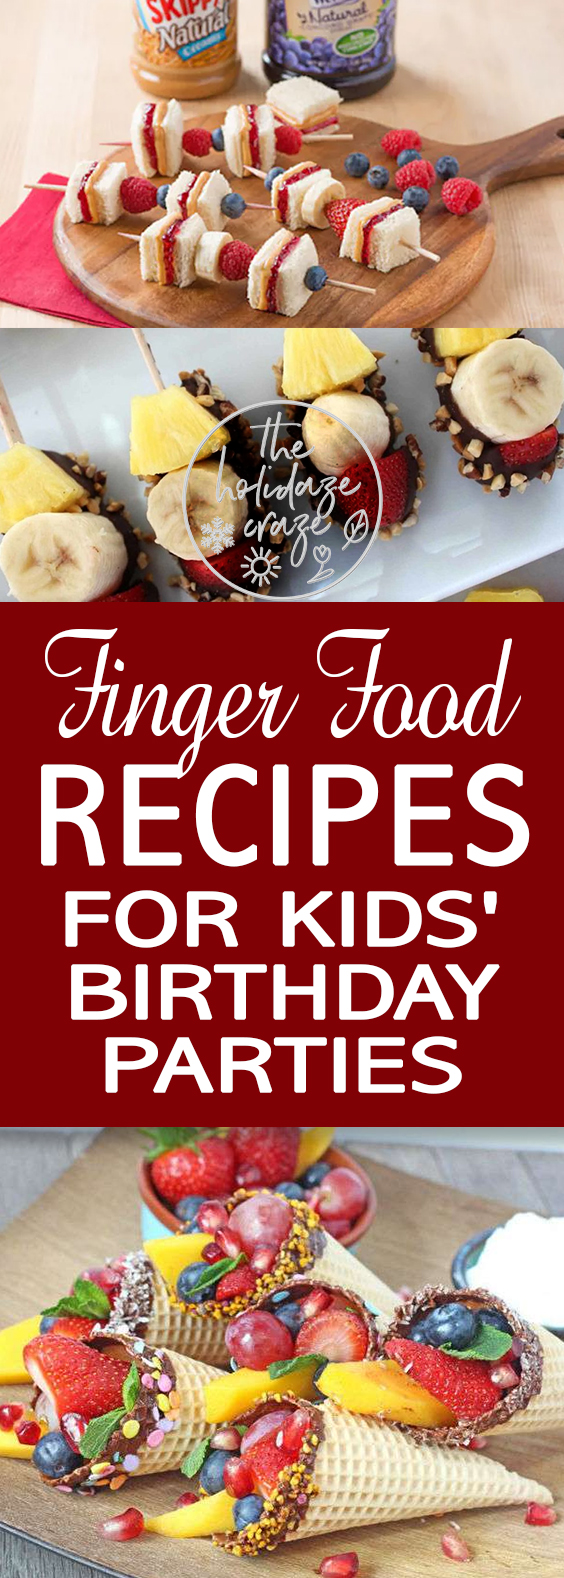 Finger Food Recipes, Birthday Parties for Kids, Kids Birthday Party Snacks, Food for Birthday Parties, Recipes, Finger Food Recipes, Kid Friendly Recipes, Popular Pin